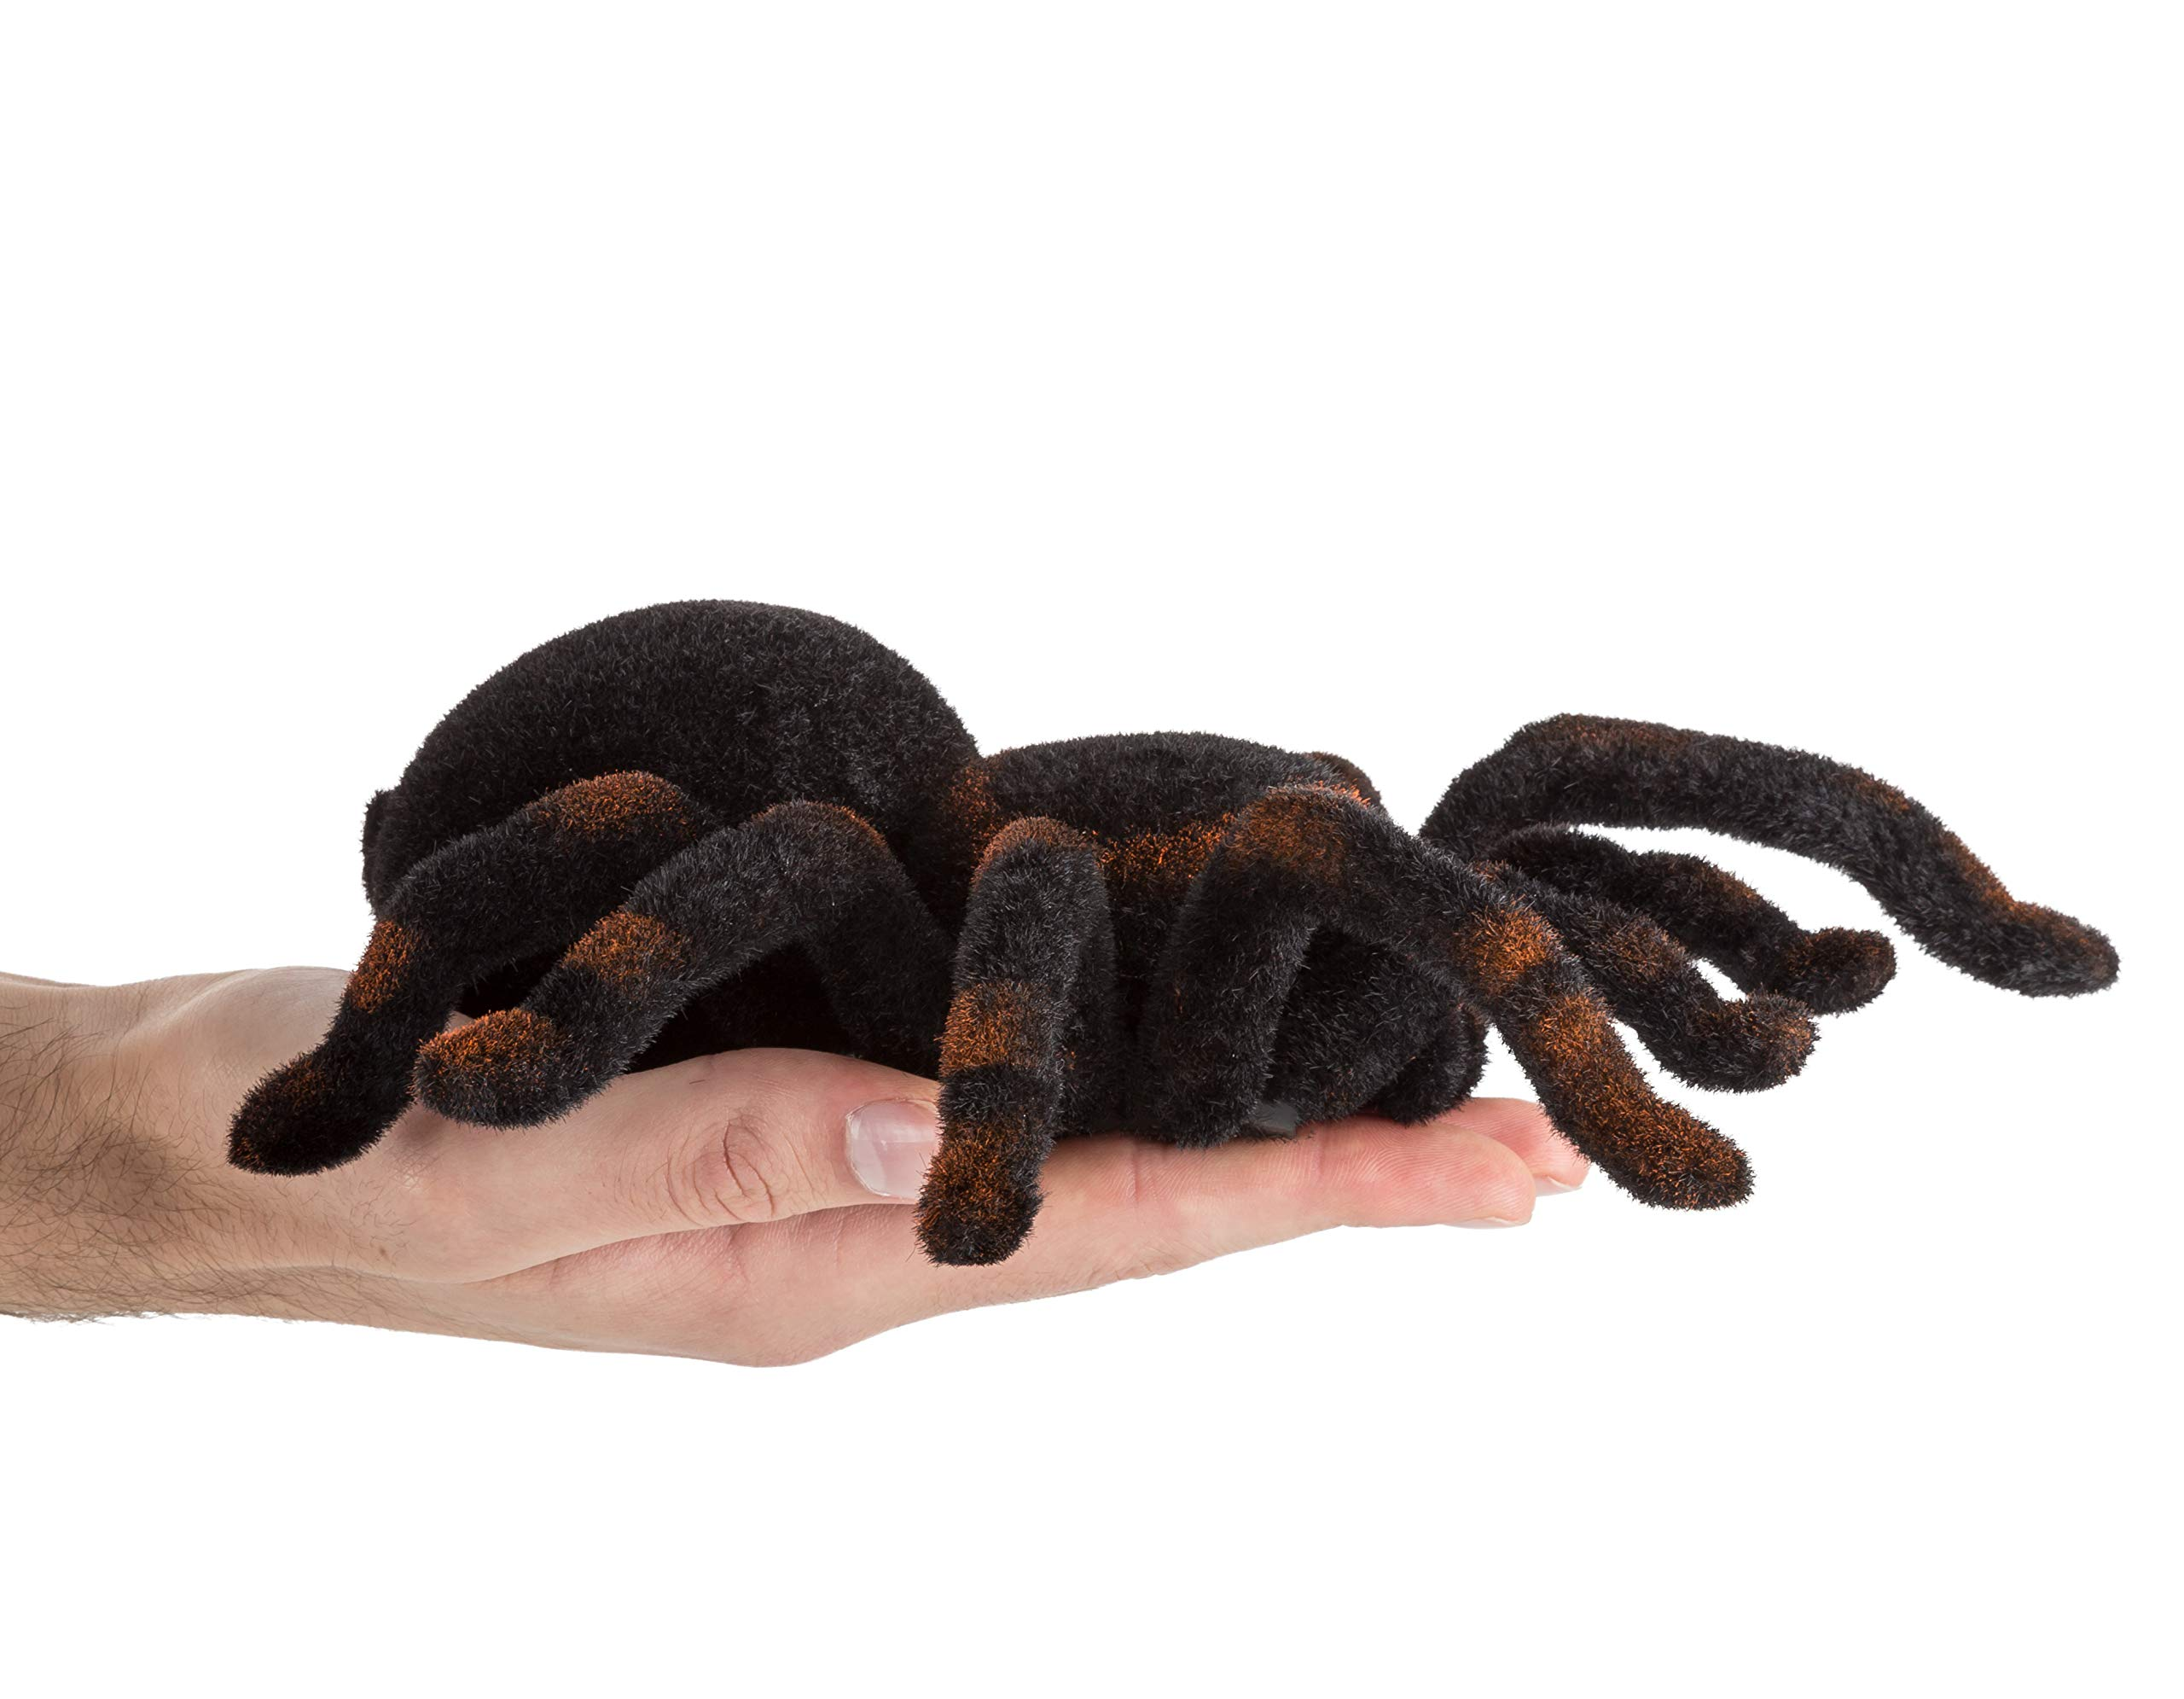 Advanced Play Remote Control Spider Toy Realistic 8 Inch Tarantula Animal Figures Funny Prank Joke Scare Gag Gifts for Halloween Christmas Party decor Birthdays Holidays April Fool Pranks by Advanced Play (Image #3)